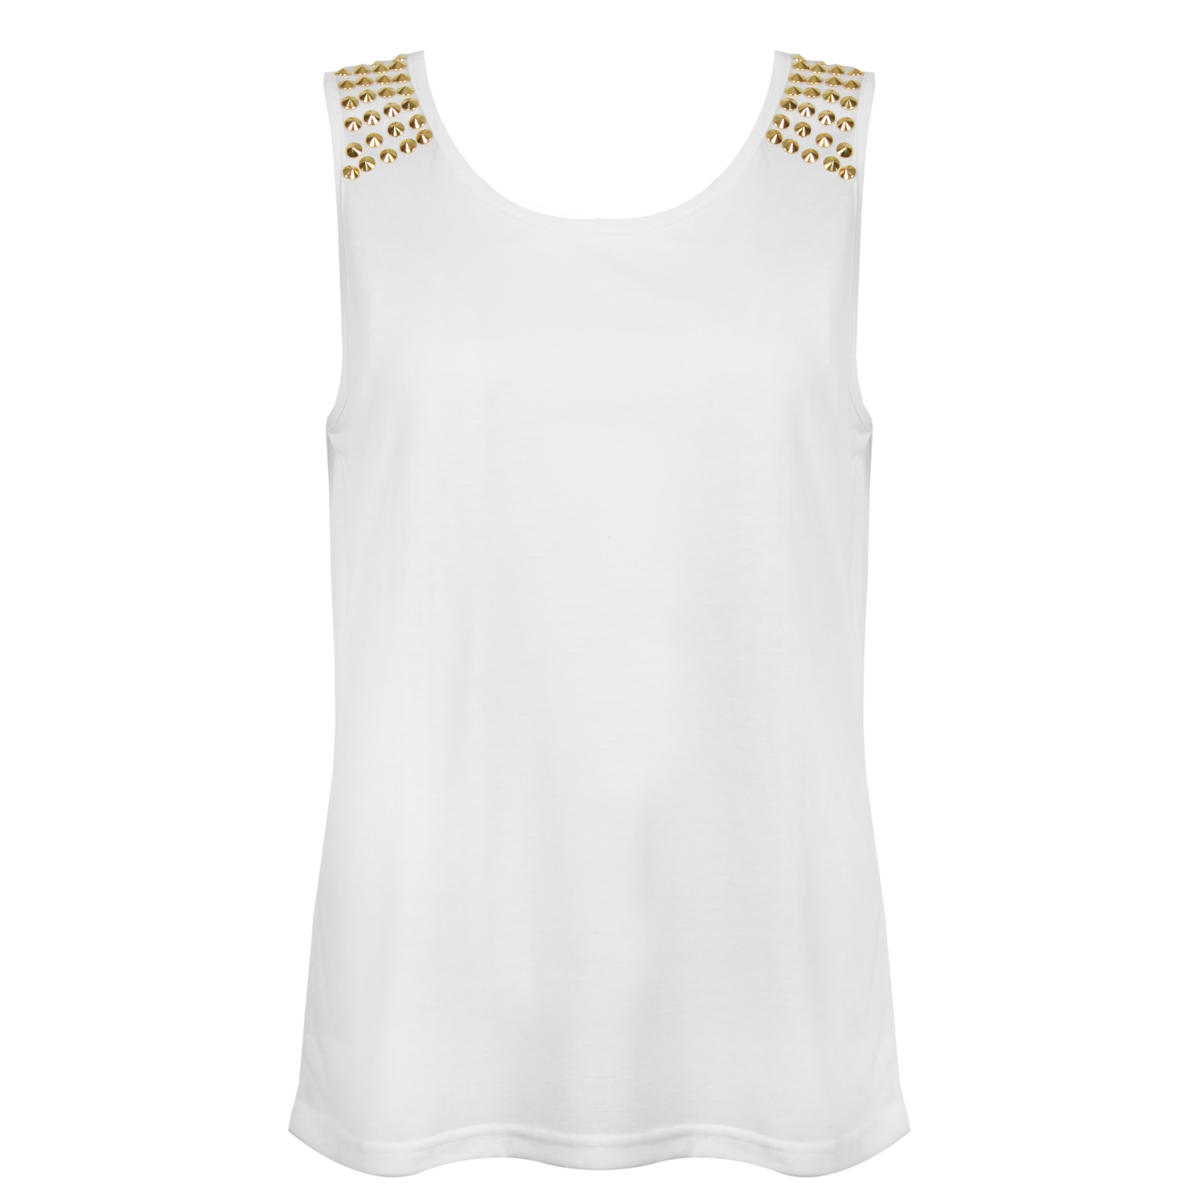 White Vest Top with Gold Studded Shoulder Detail Preview